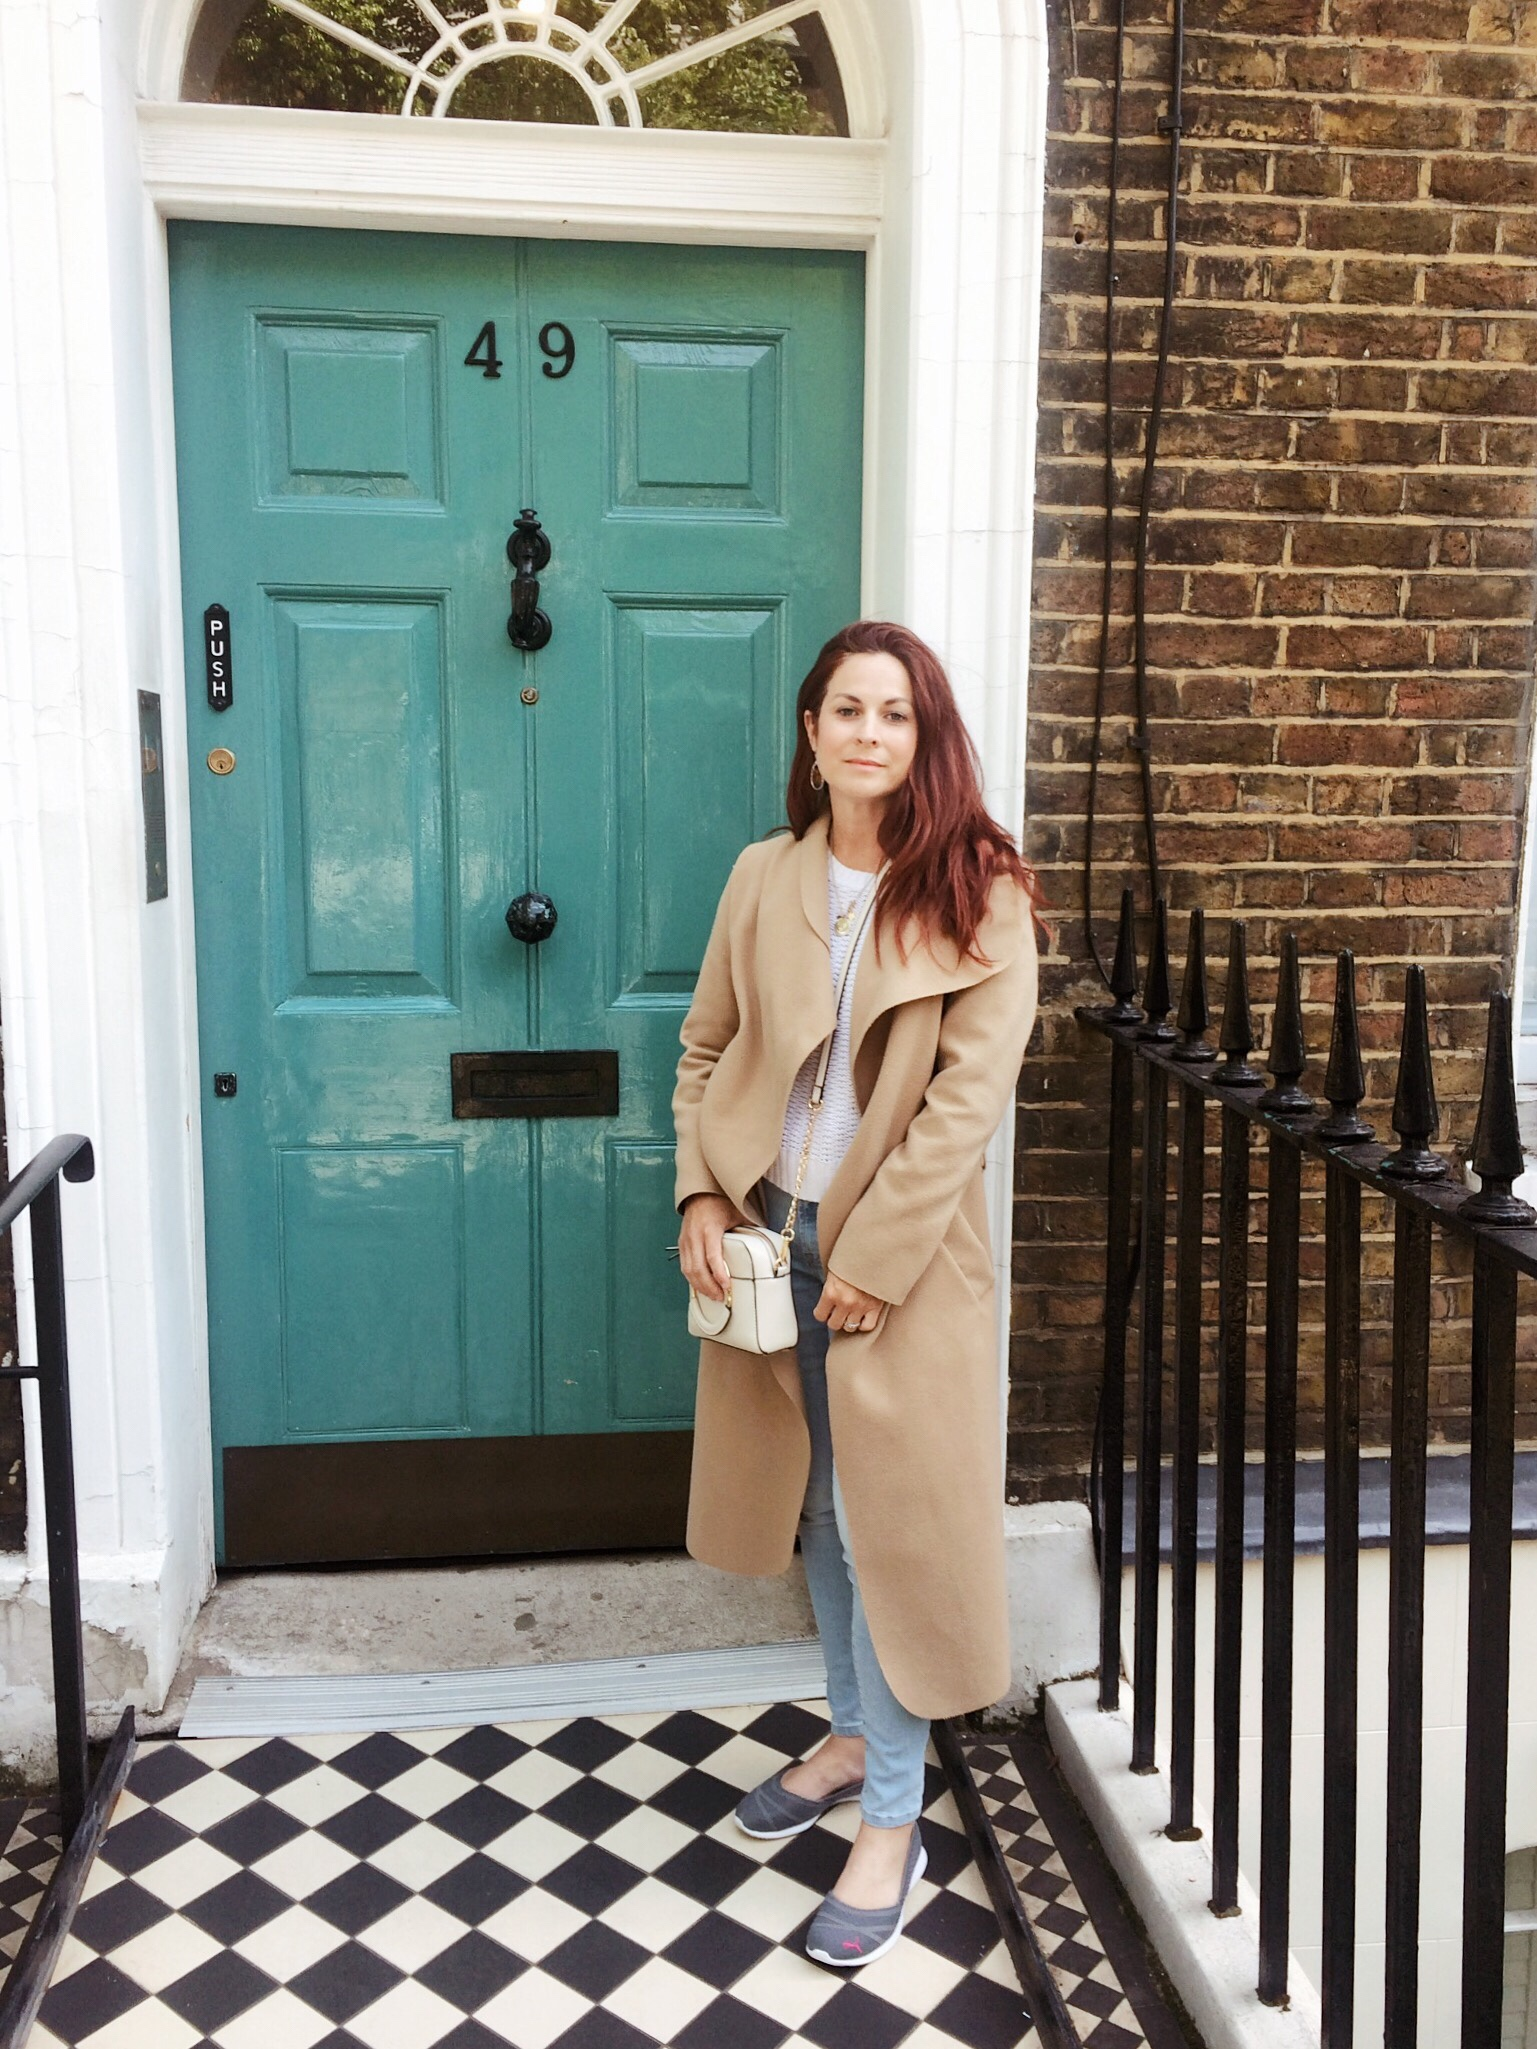 Charles Dickens museum, museums to visit, things to do in London, teal doors, front doors